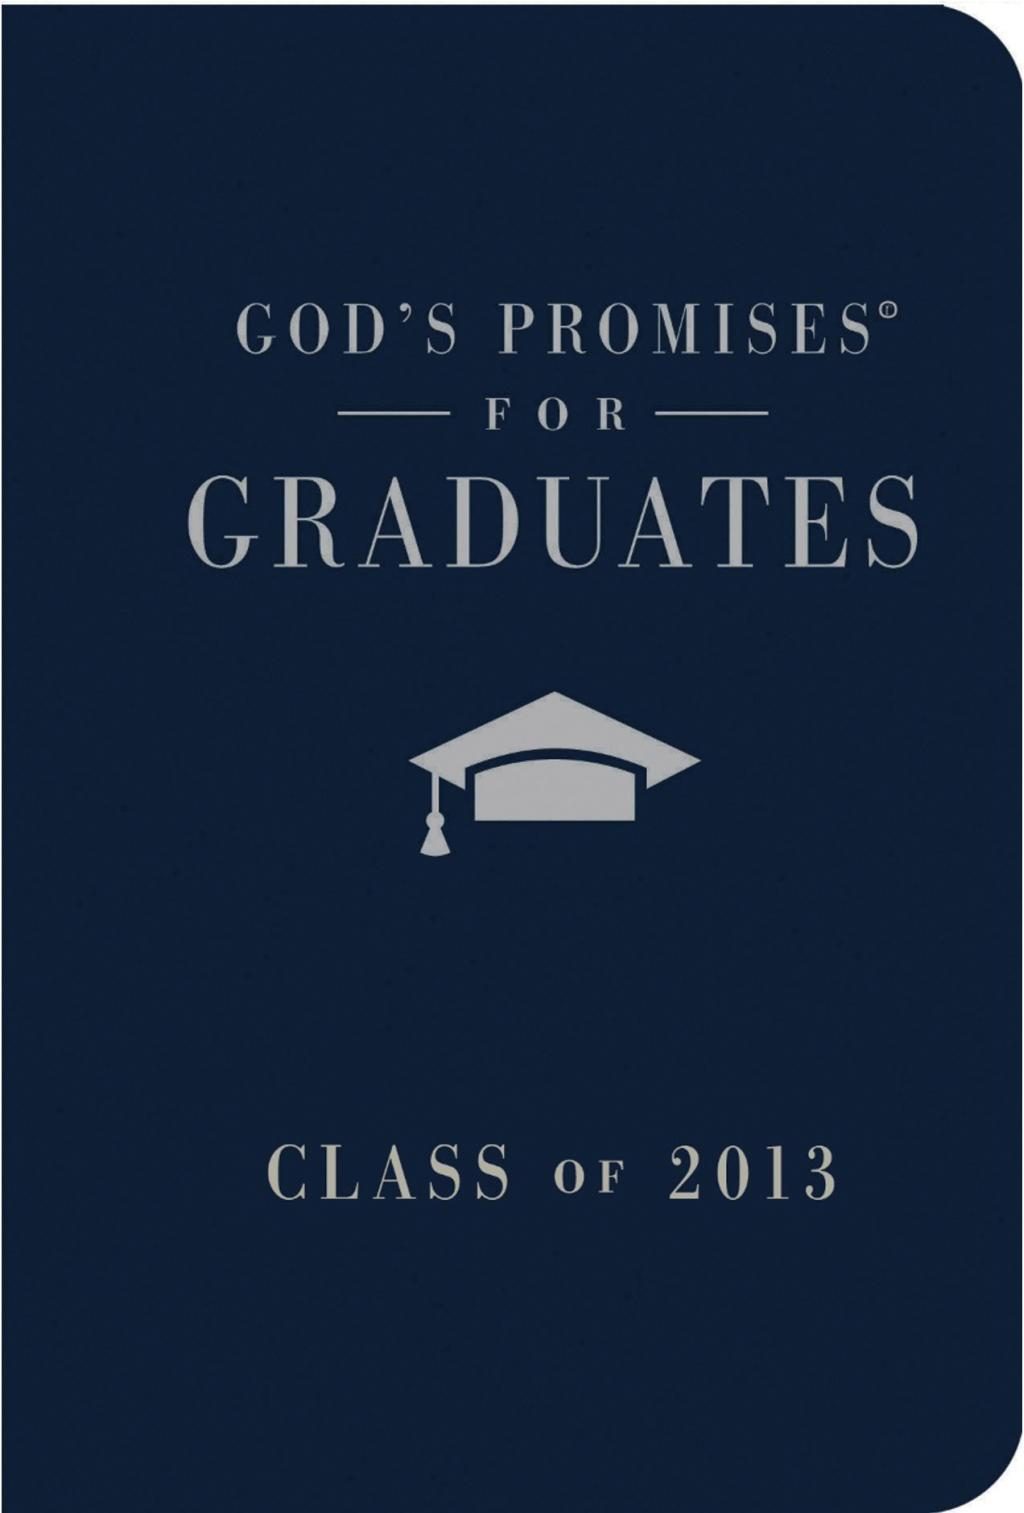 God's Promises for Graduates: Class of 2013 - Pink